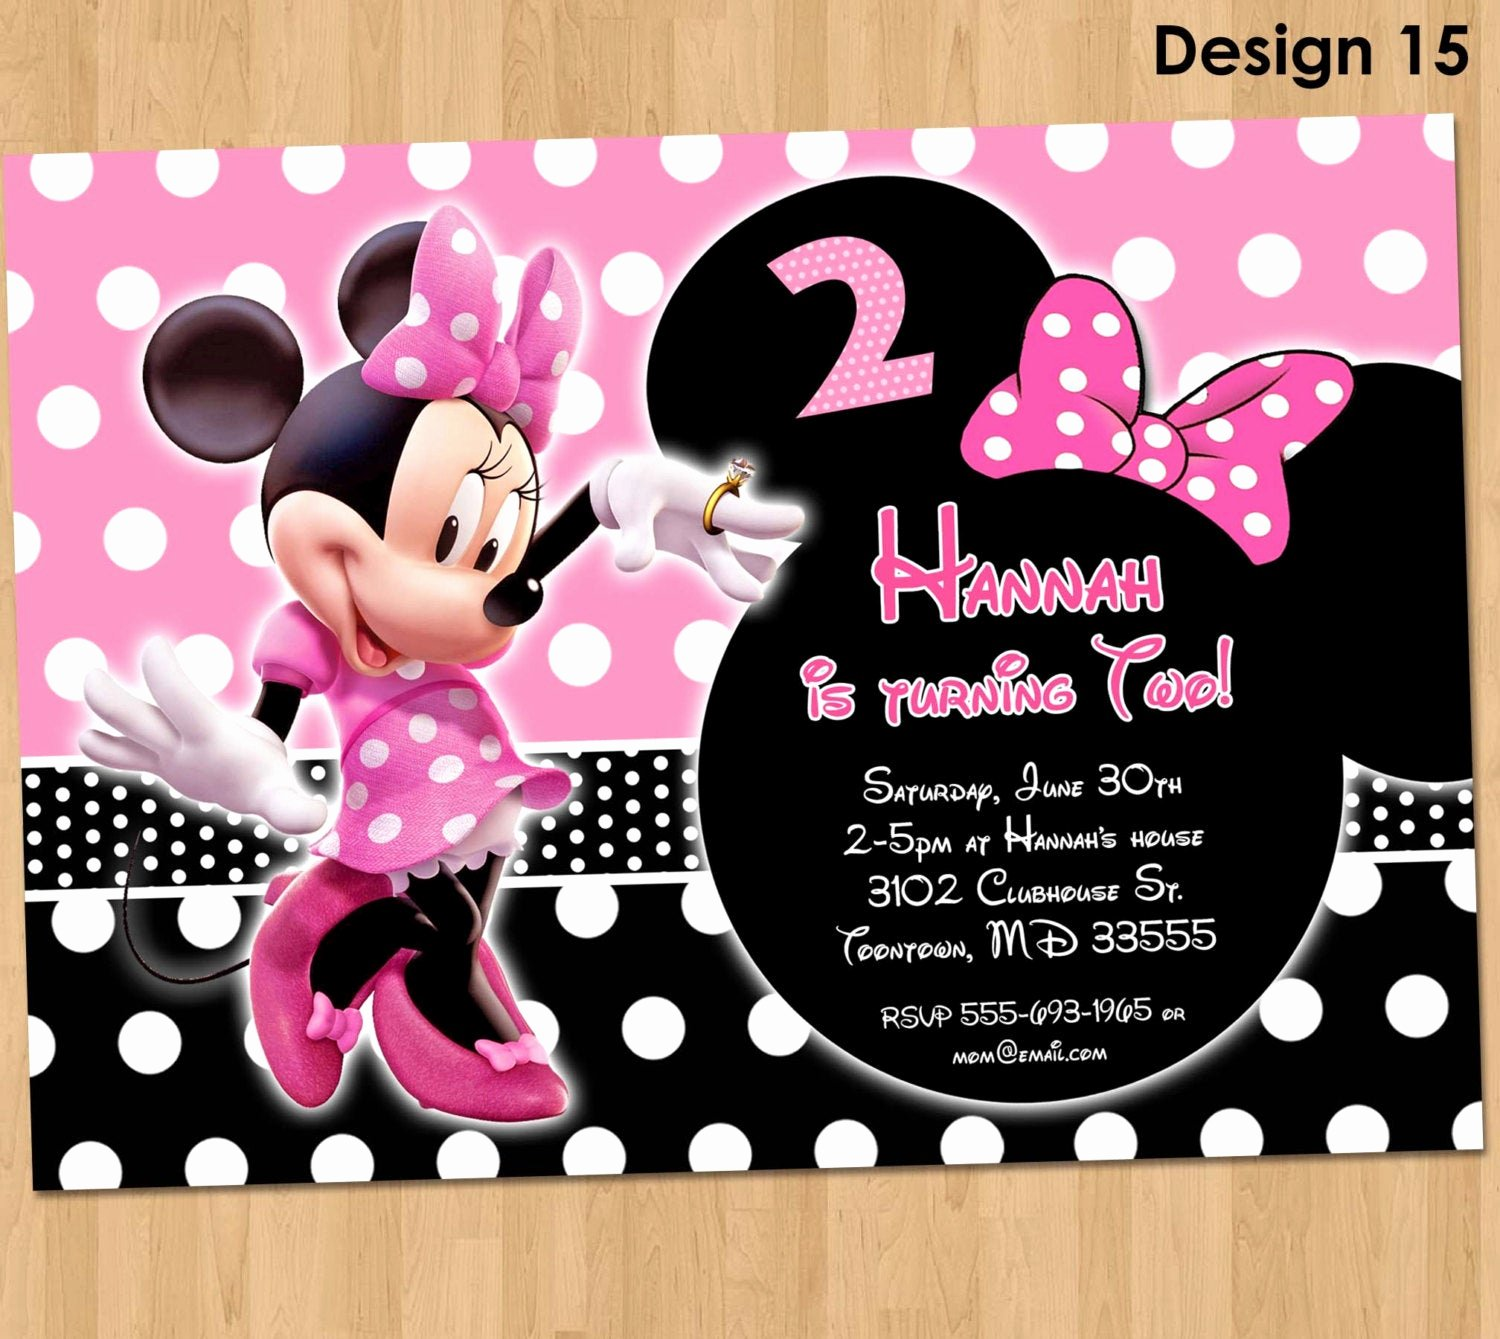 Minnie Mouse Invitations Free Elegant Minnie Mouse Invitation Minnie Mouse Birthday Invitation